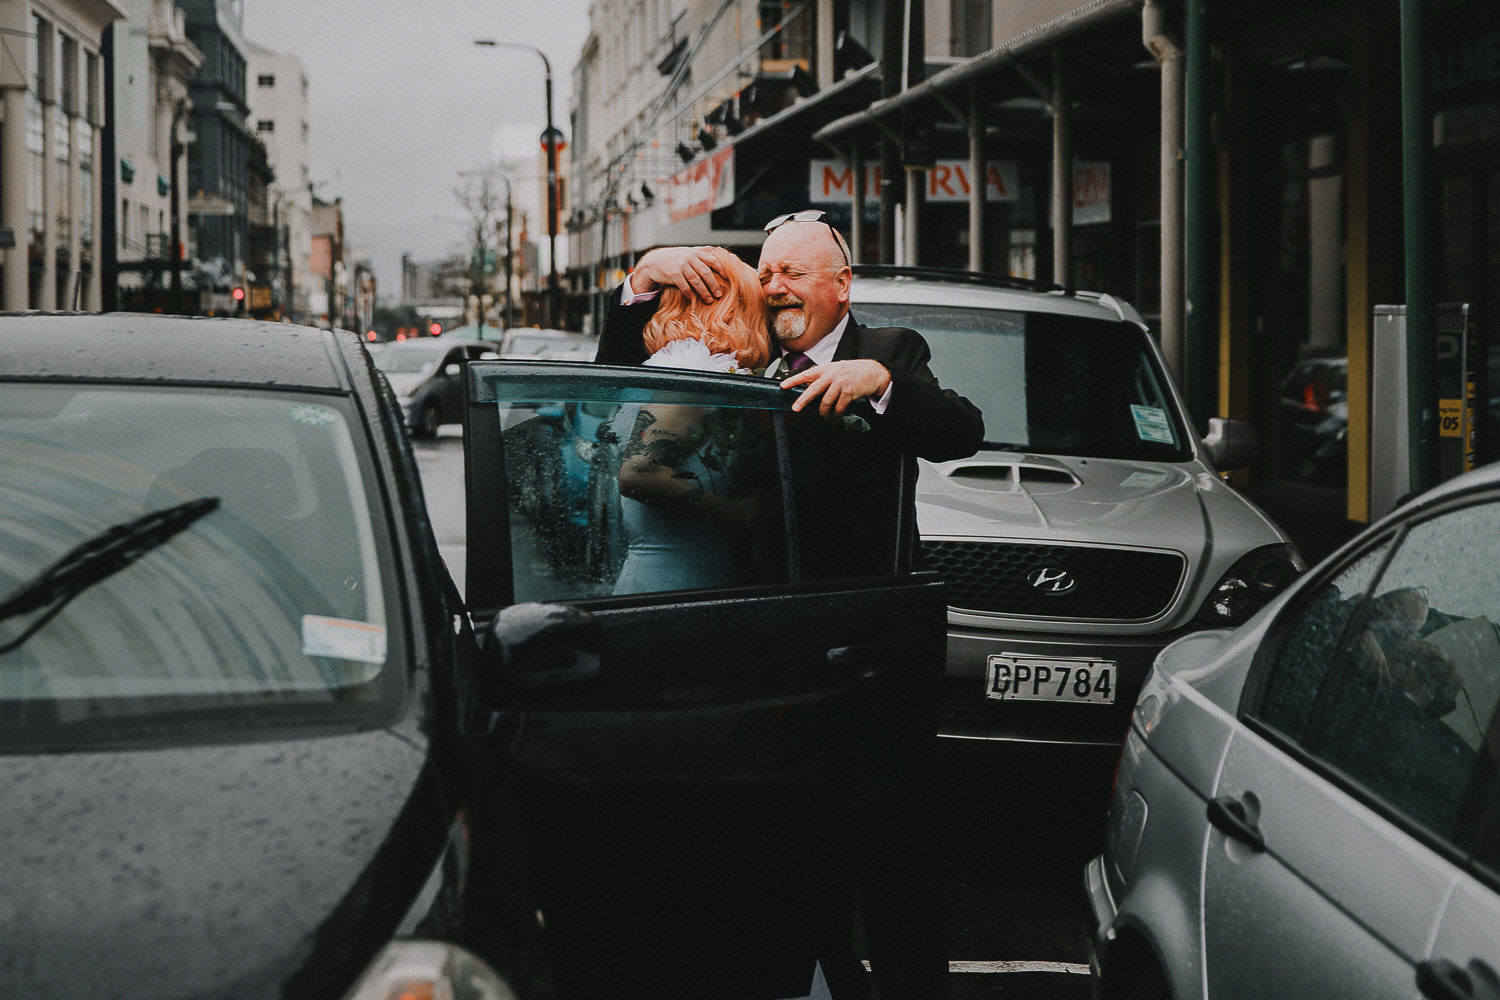 Emotional dad helping bride out of car